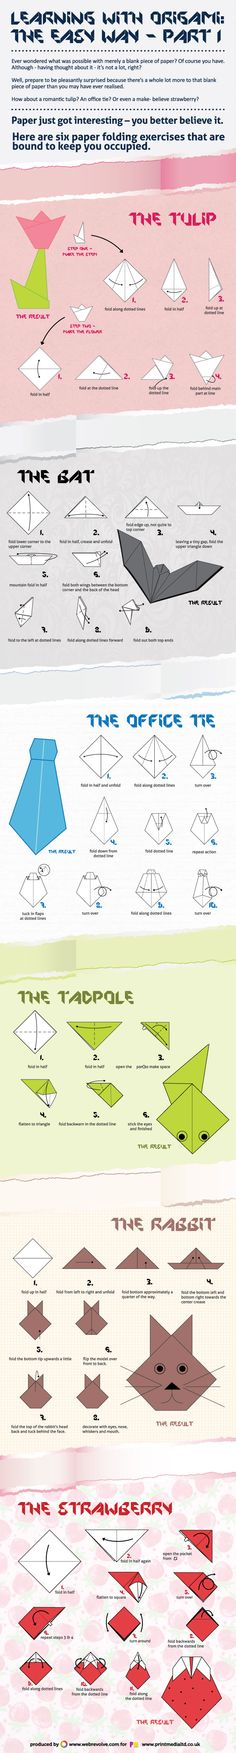 6 Easy Origami : Either in moments of embarrassment, or tediousness, or creativity rush, knowing how to play with a piece of paper is good for relaxation. Learn how to easily craft 6 paper objects following the ancient origami technique. Try that as an exercise to keep children occupied.  > http://infographicsmania.com/6-easy-origami/